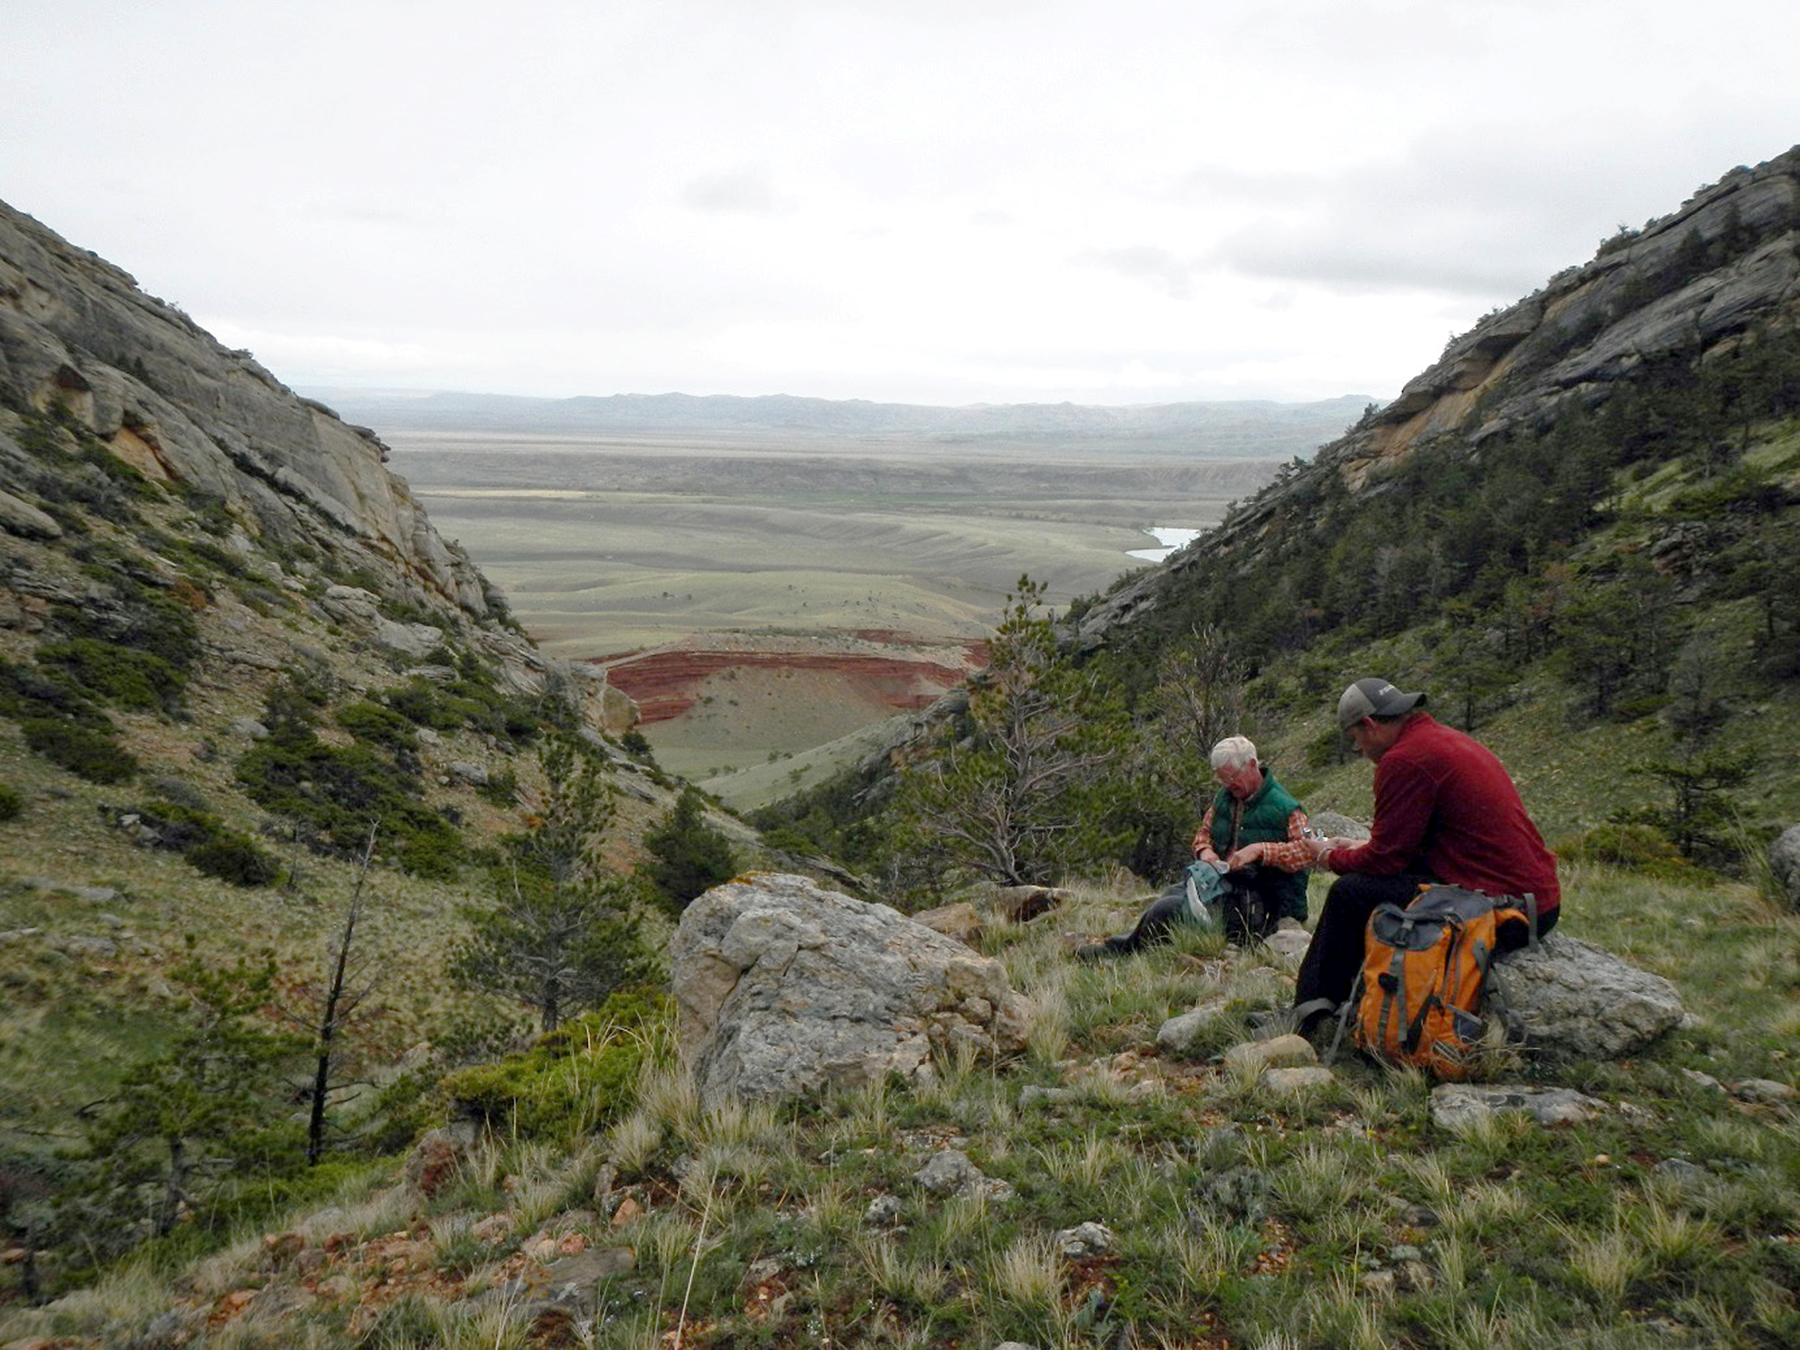 Two hikers with back packs on top of a large hill overlooking a big valley.